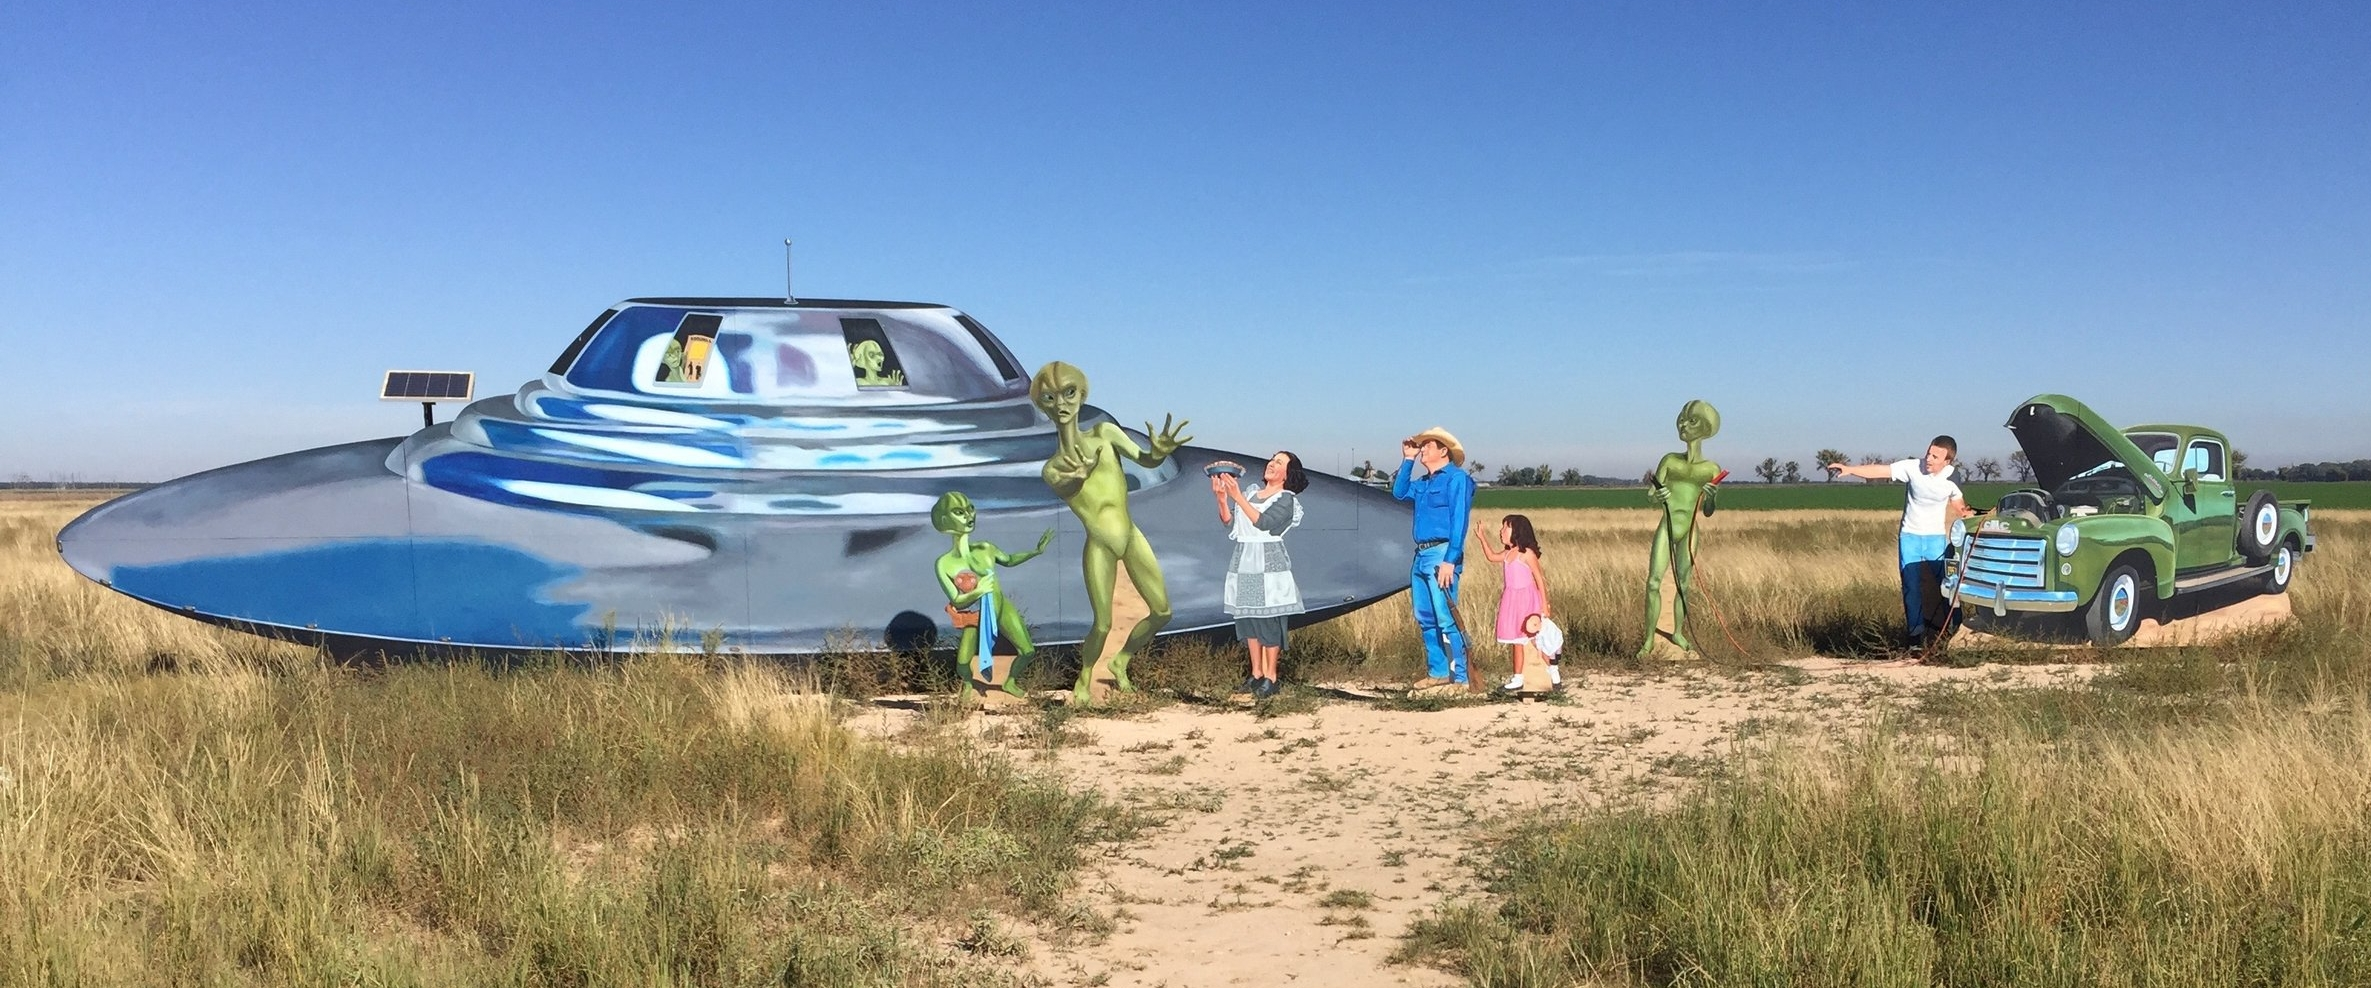 Outside Roswell